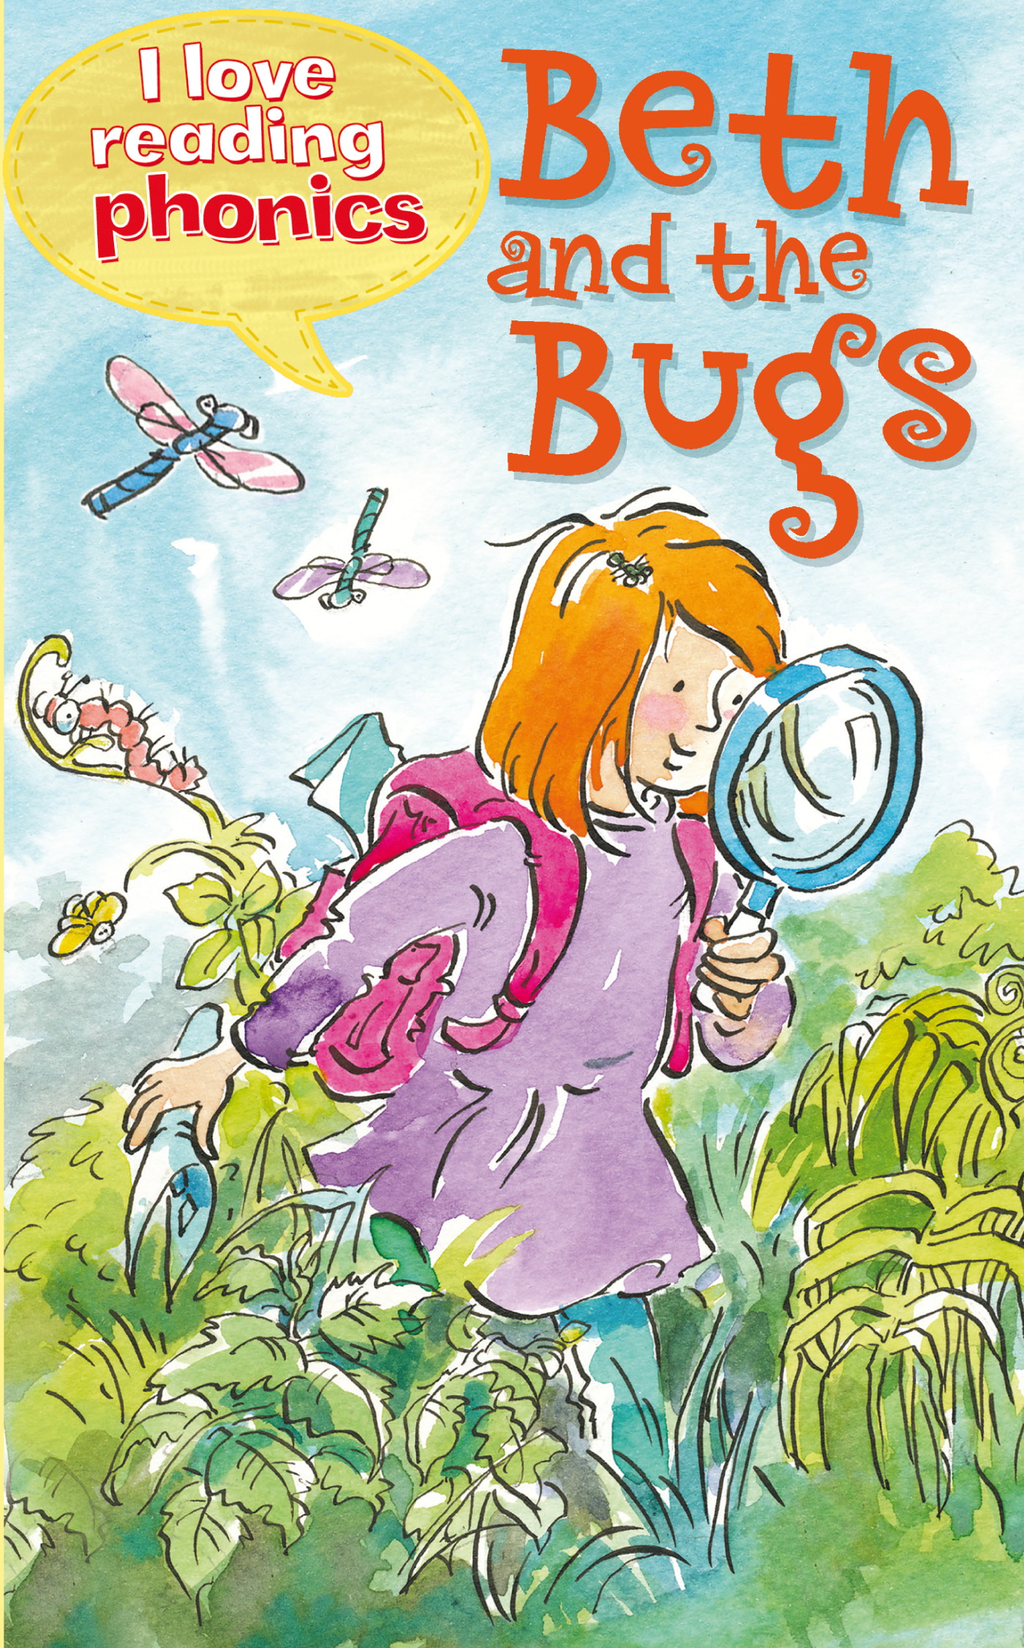 Beth & The Bugs (I Love Reading Phonics Level 2)